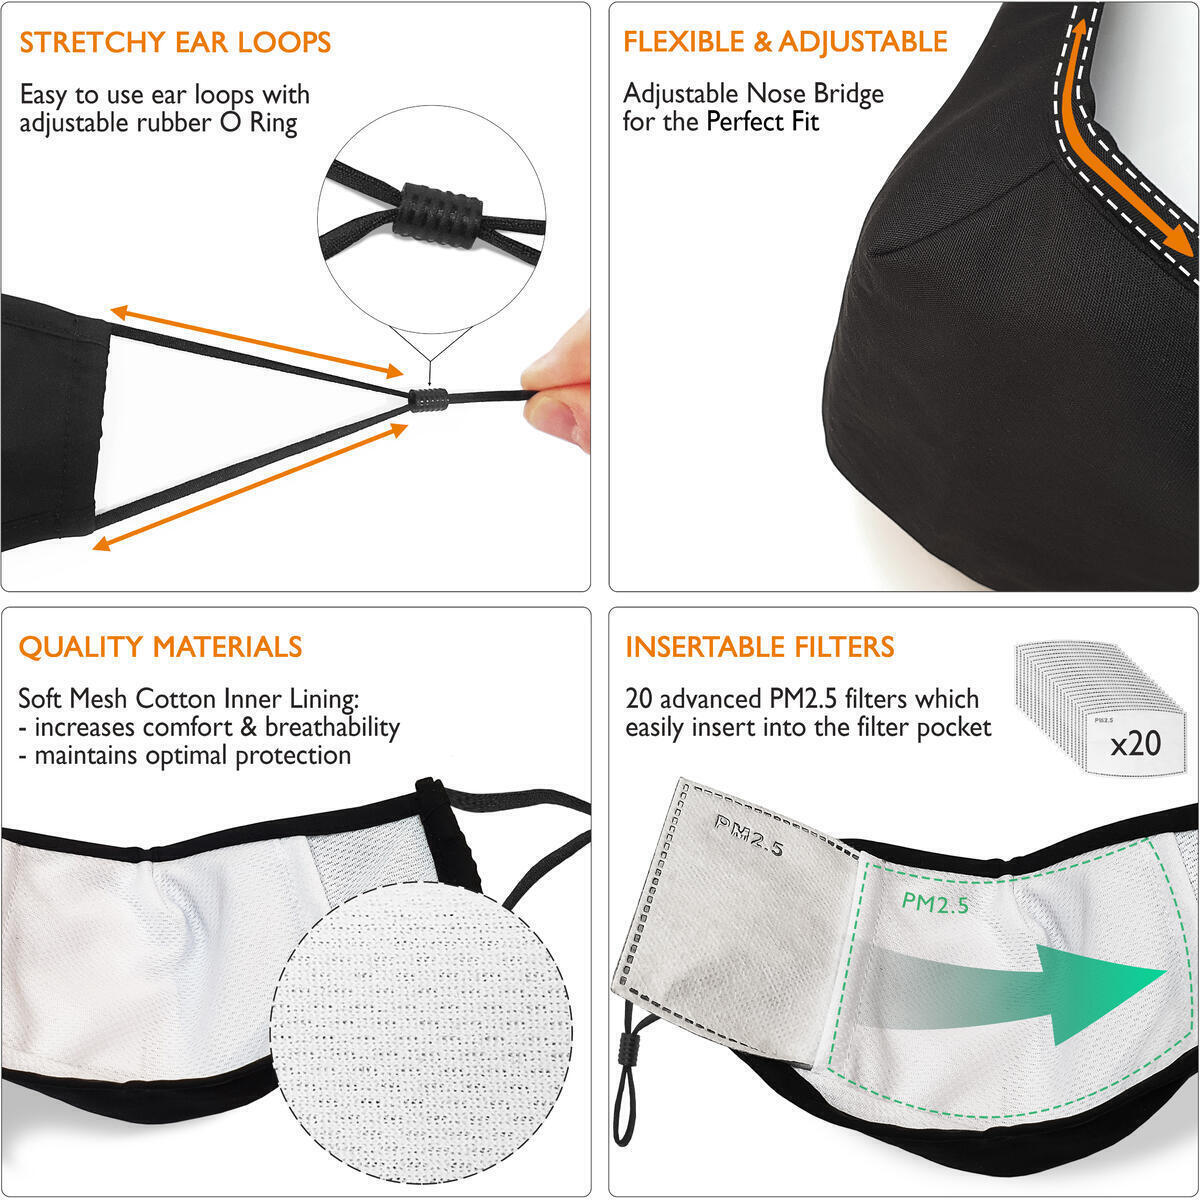 Proventure Protective Face Reusable Cover - 5pack unisex Protective Adjustable face Covering, Soft mesh cotton lining (Includes 20 pack of Filters)